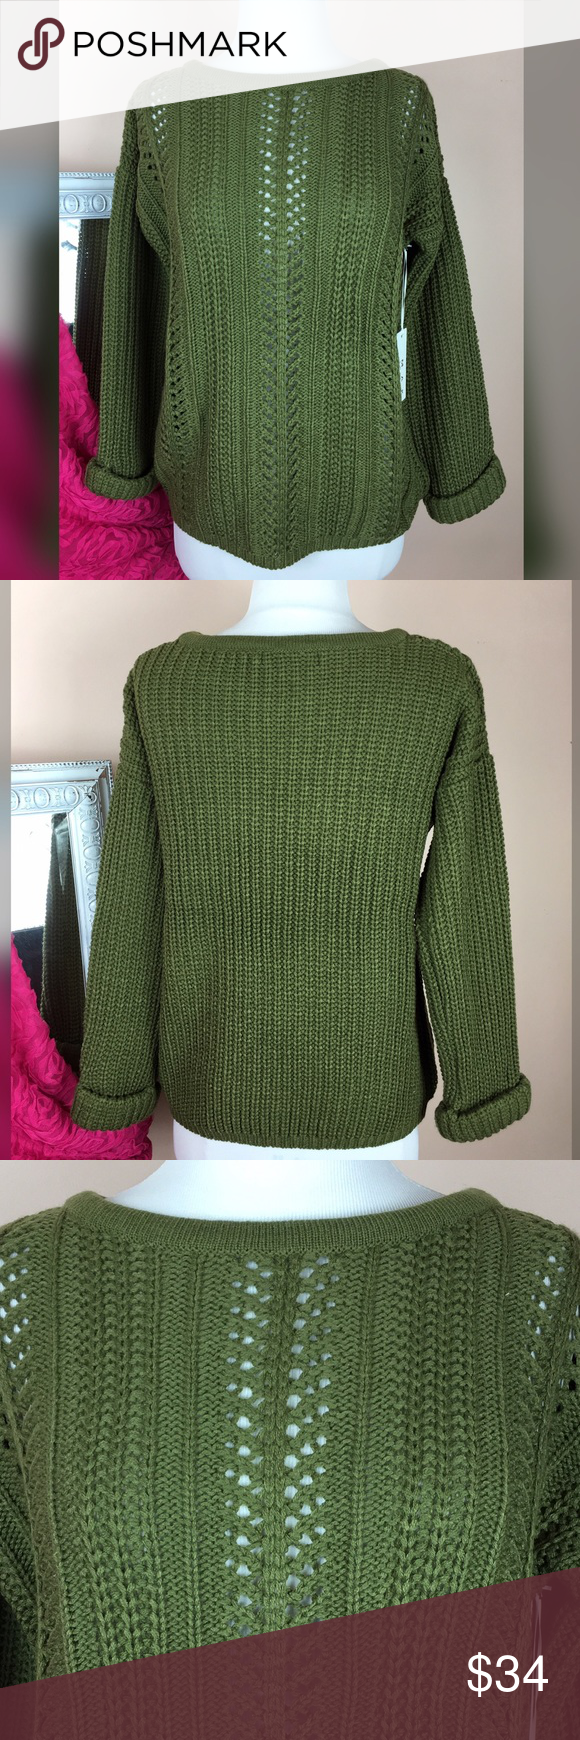 Lowest priceolive chunky sweater boutique open weave olive chunky knit sweater olive chunky knit sweater gorgeous olive knit with open weave pattern bankloansurffo Images